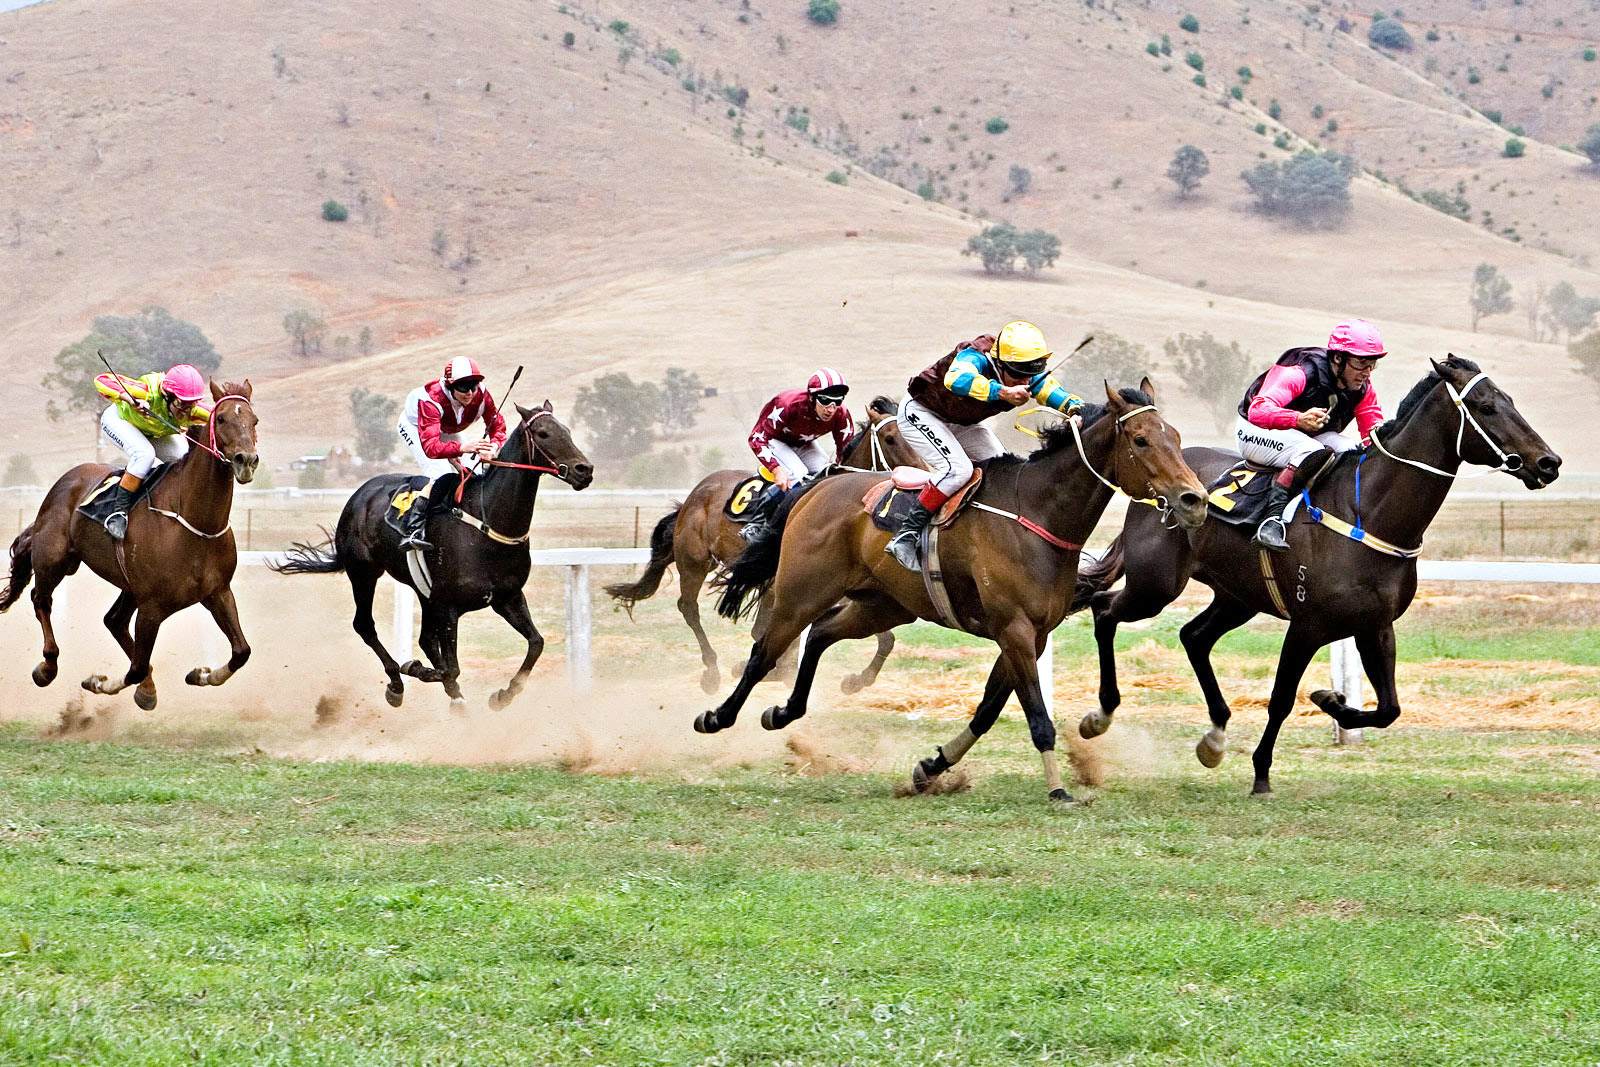 File:Tambo valley races 2006 edit.jpg  Wikipedia